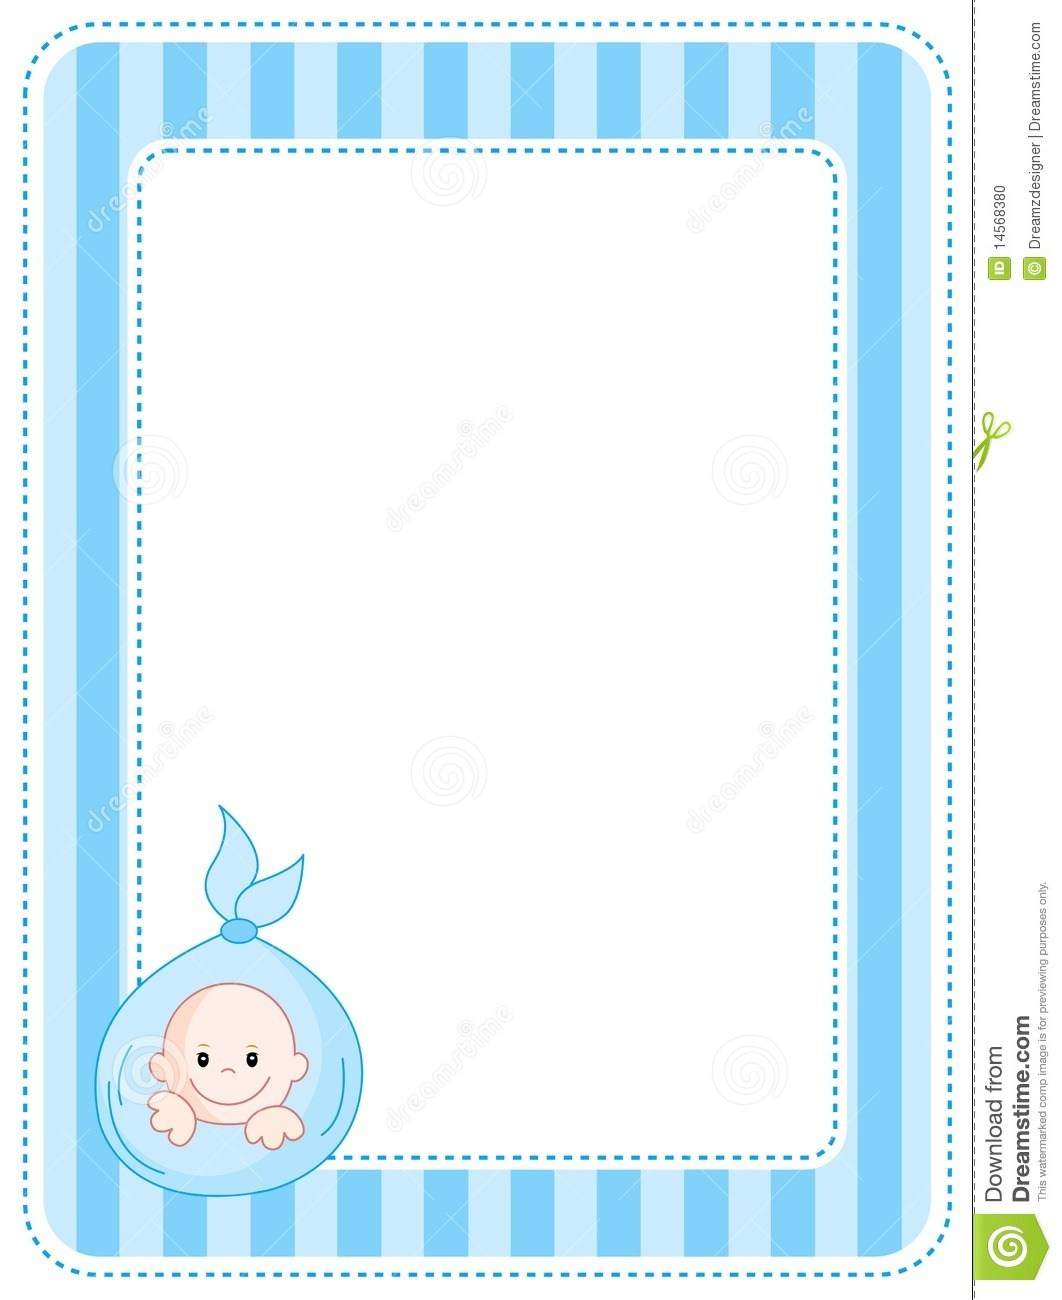 Baby frame clipart 8 » Clipart Portal.